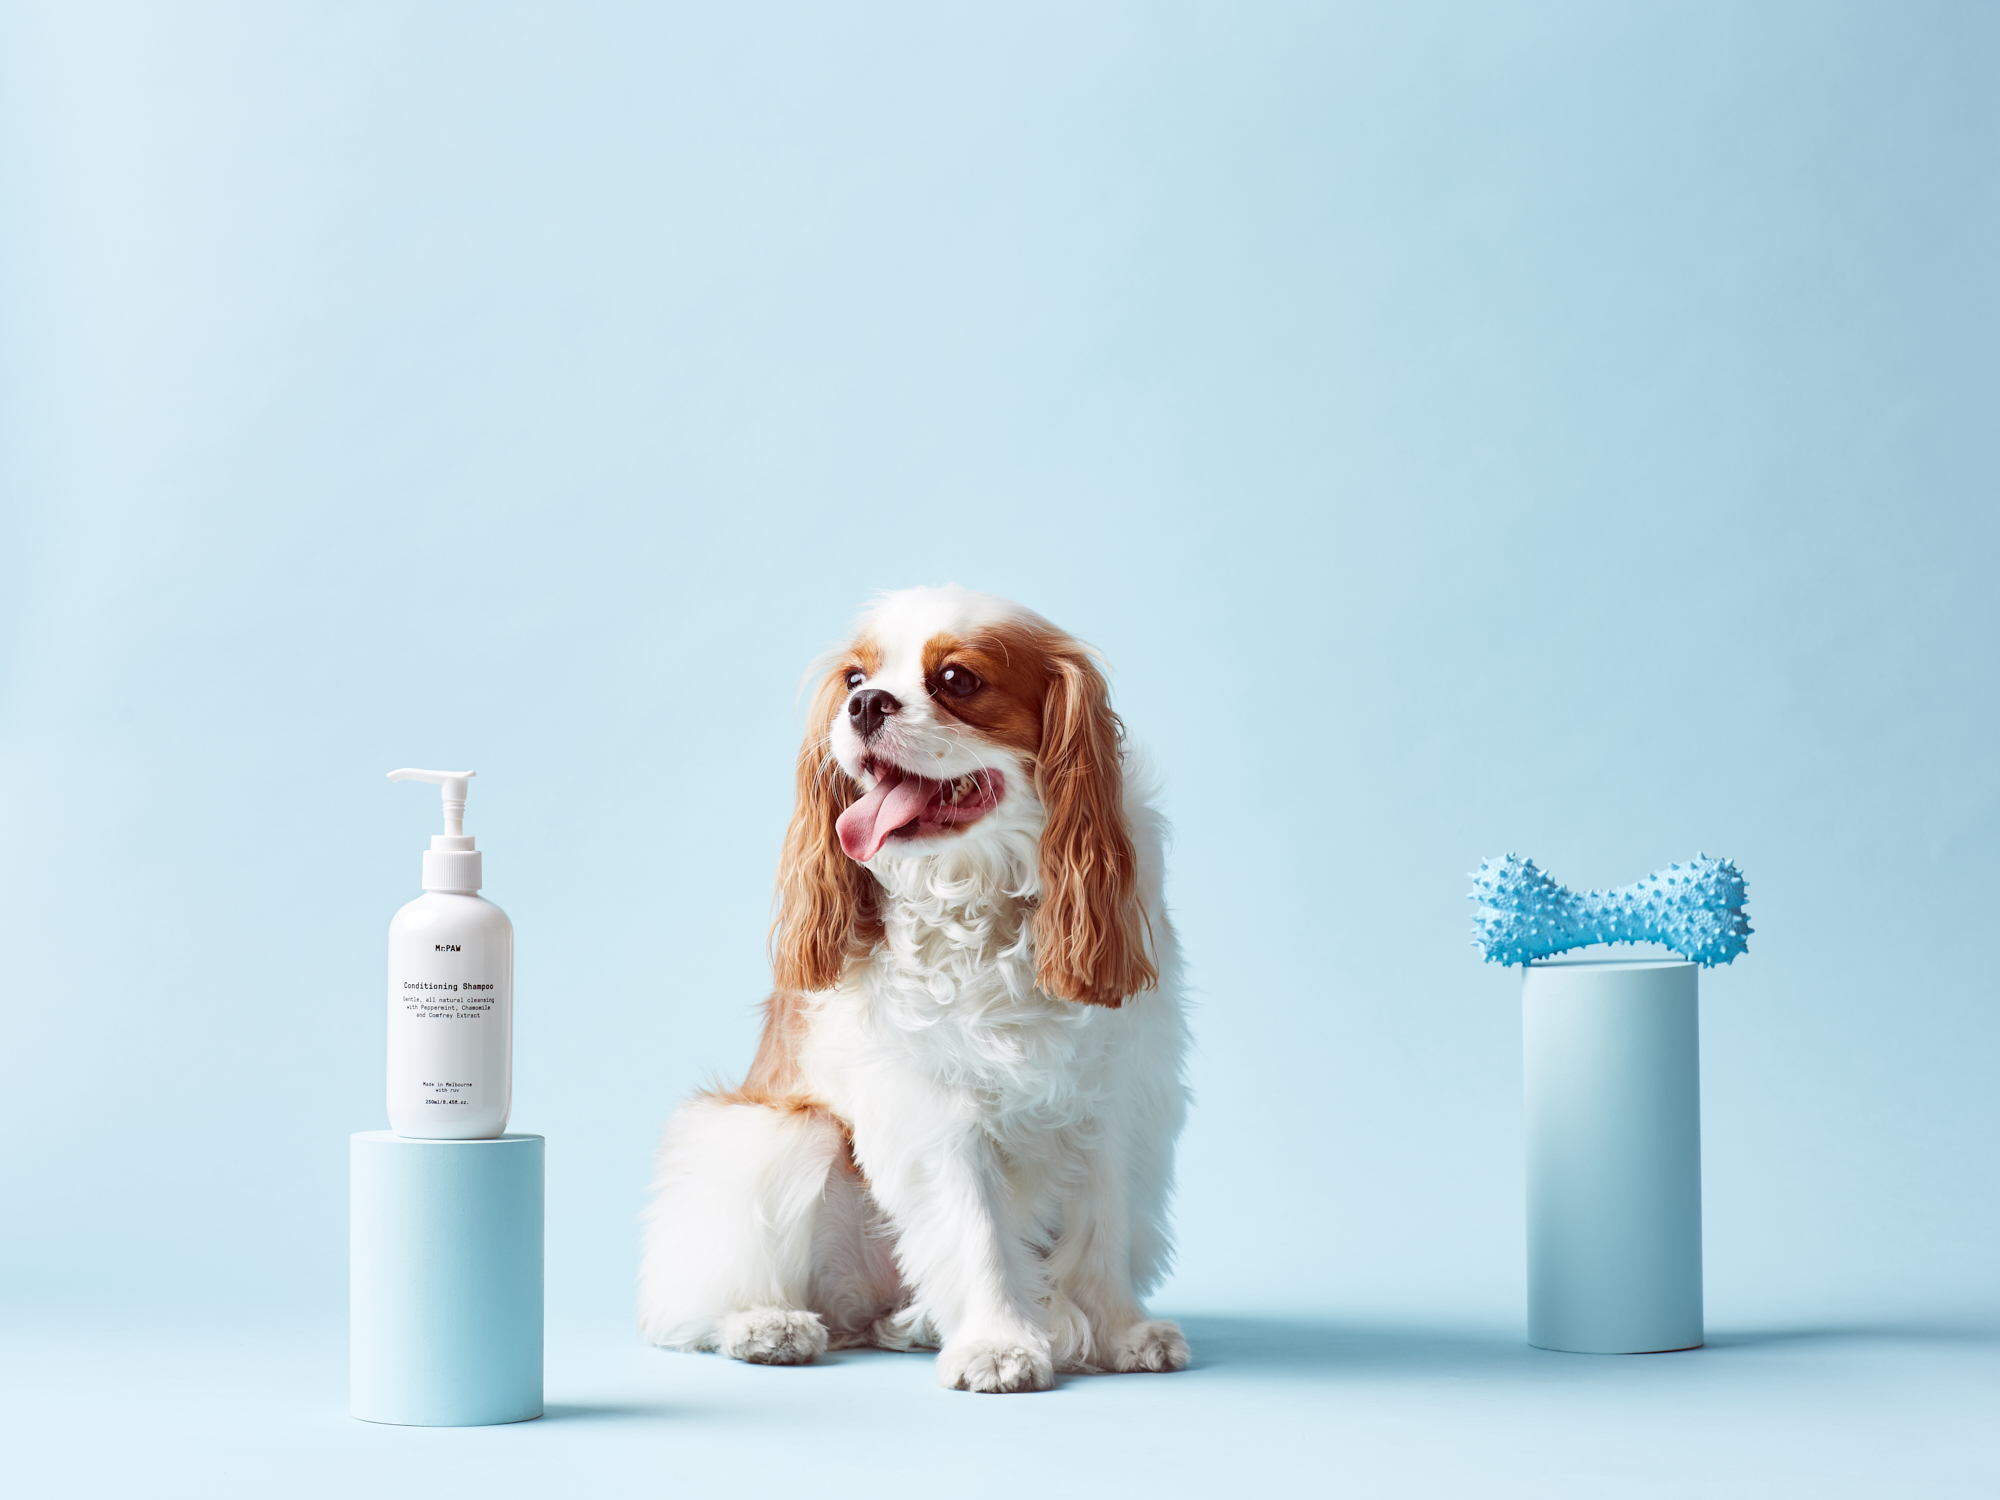 Mr Paw dog shampoo and molly the cavalier king charles